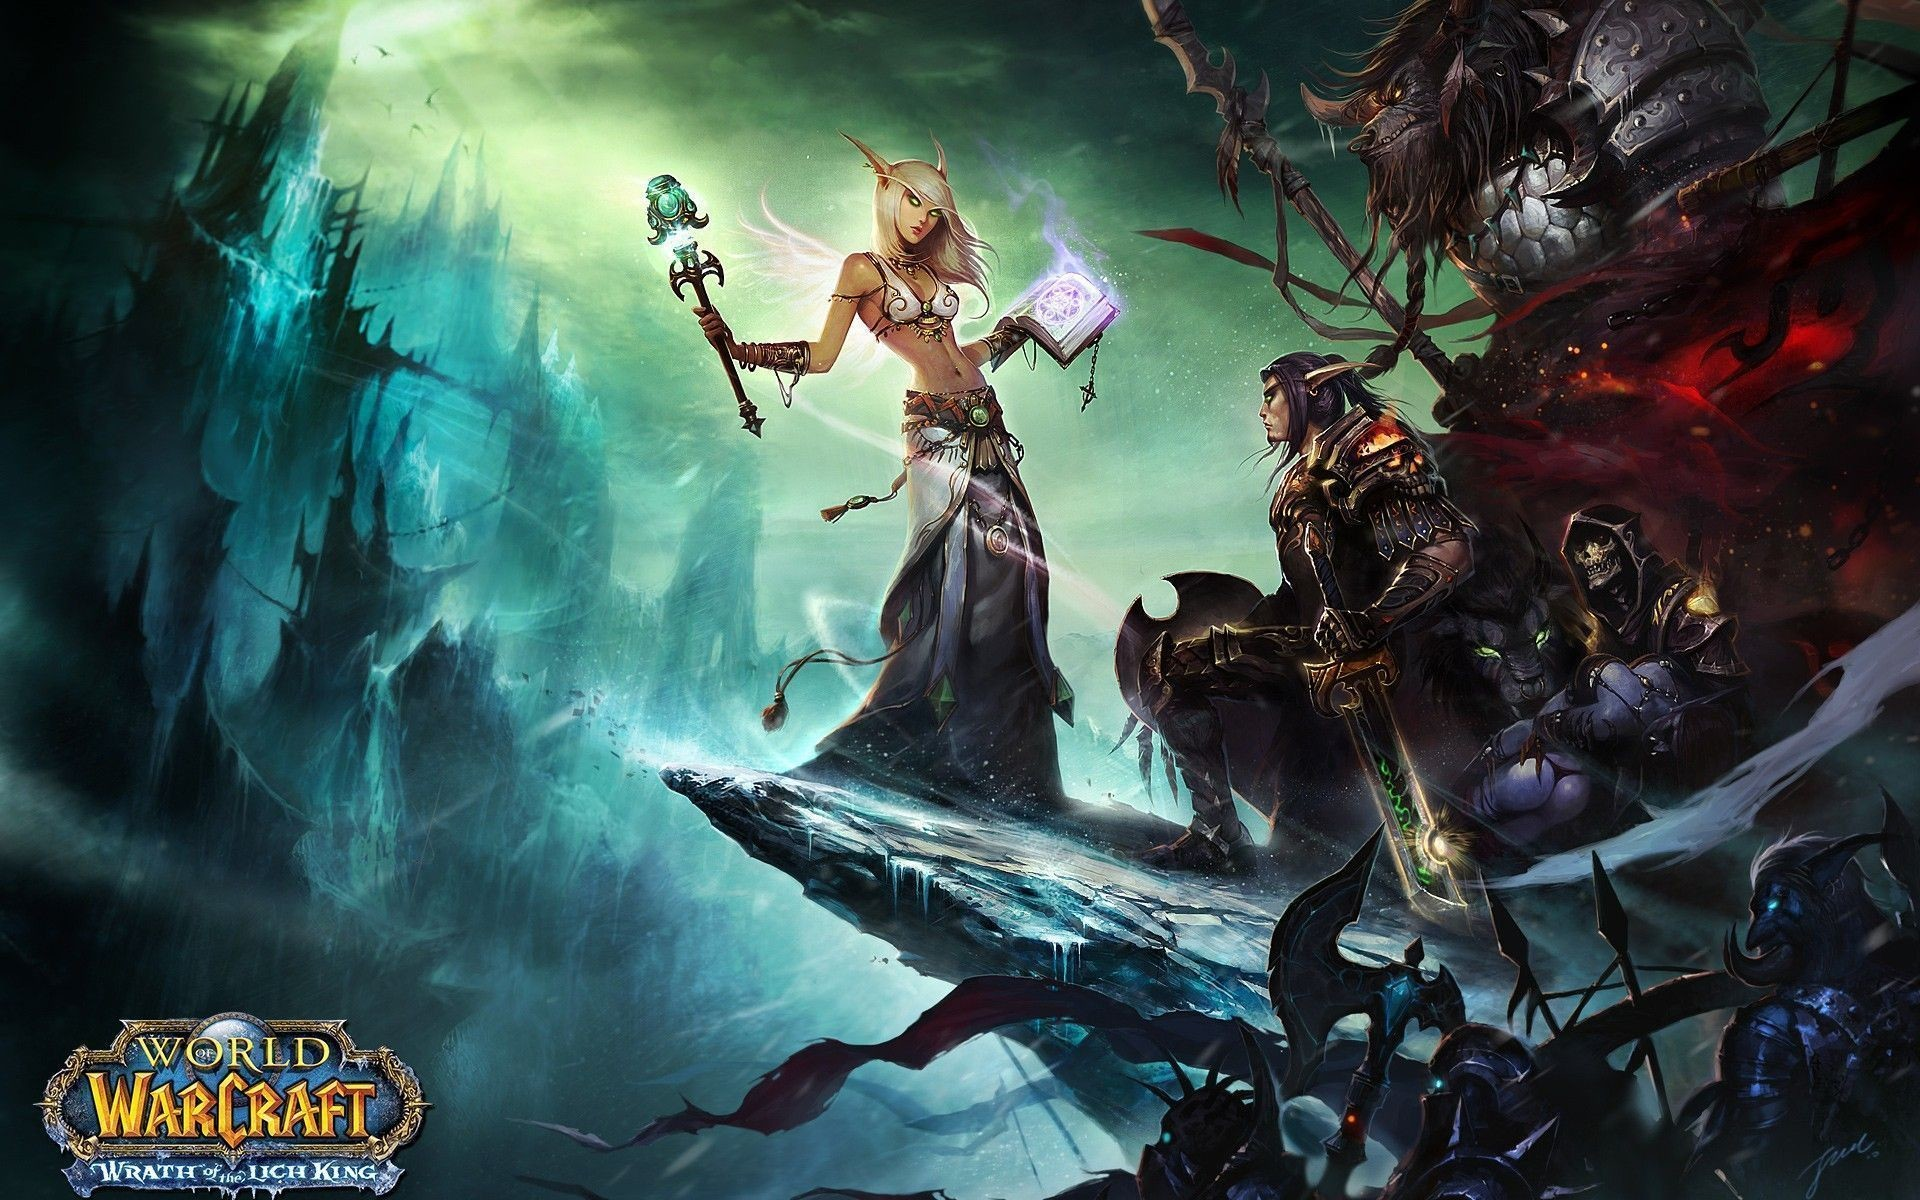 1920x1200 World of Warcraft Wallpaper Backgrounds High Definition Wallpapers .